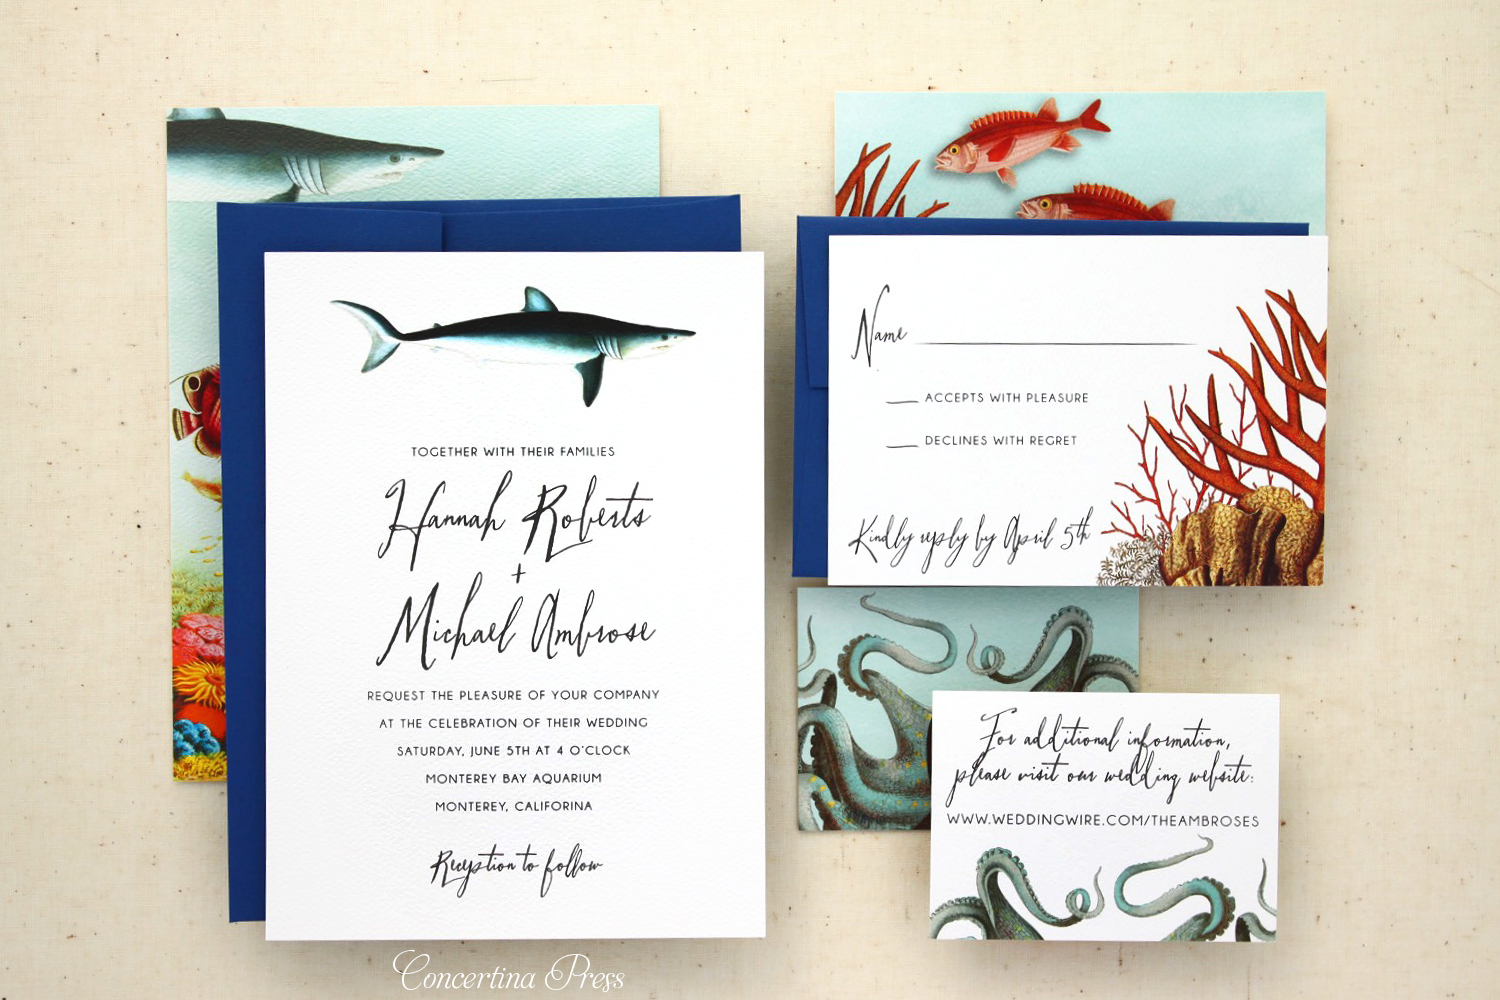 Under the Sea Wedding Invitations featuring sharks and fish from Concertina Press